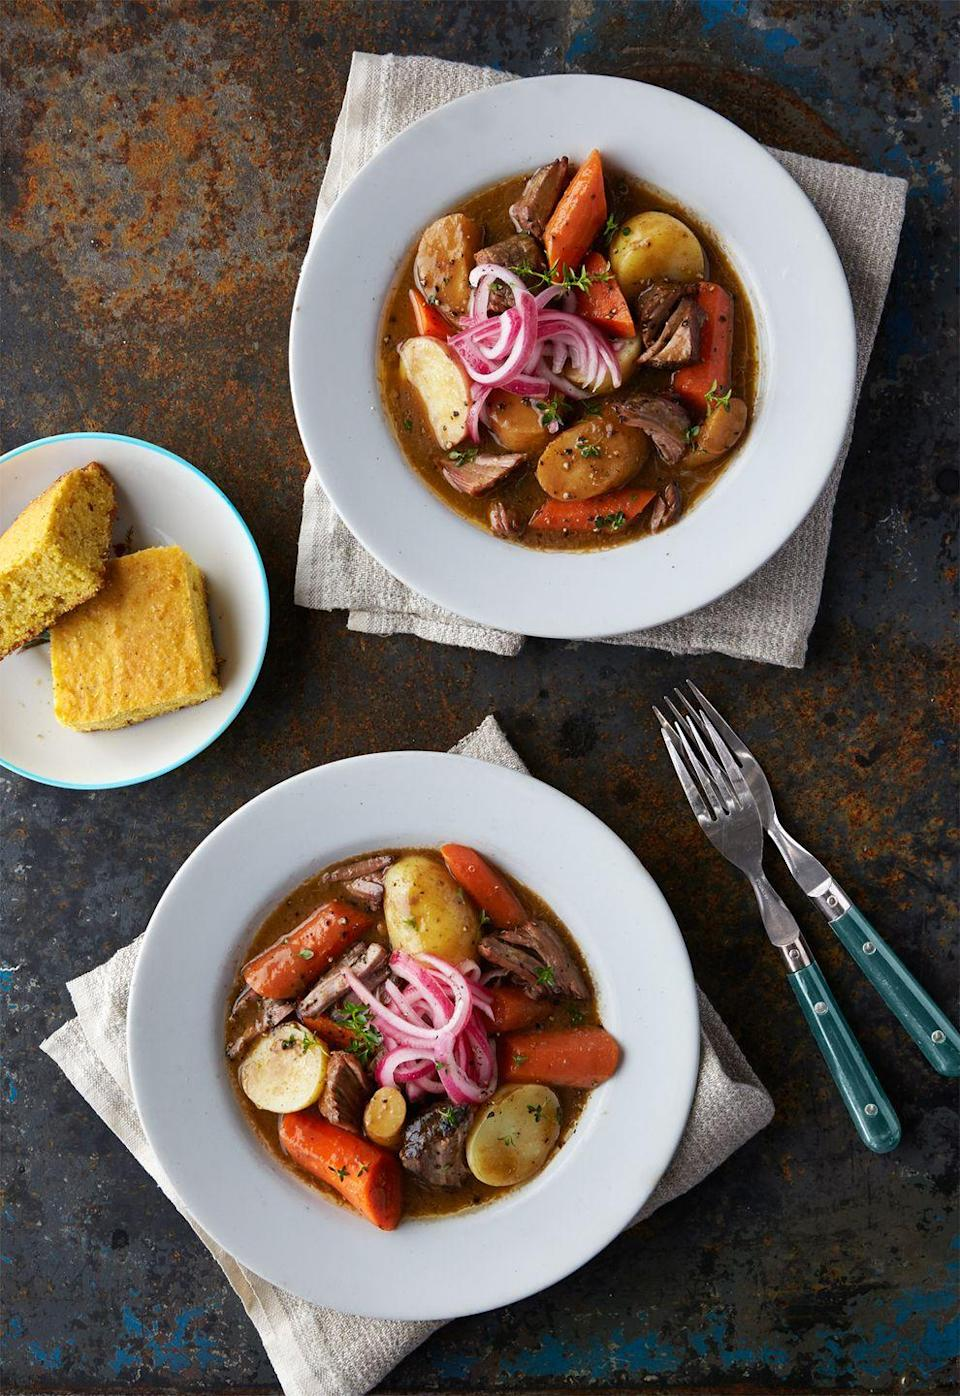 """<p>And you have to serve it with cornbread on the side.</p><p>Get the recipe from <a href=""""https://www.delish.com/cooking/recipe-ideas/recipes/a44289/red-eye-brisket-stew-recipe/"""" rel=""""nofollow noopener"""" target=""""_blank"""" data-ylk=""""slk:Delish"""" class=""""link rapid-noclick-resp"""">Delish</a>.</p>"""